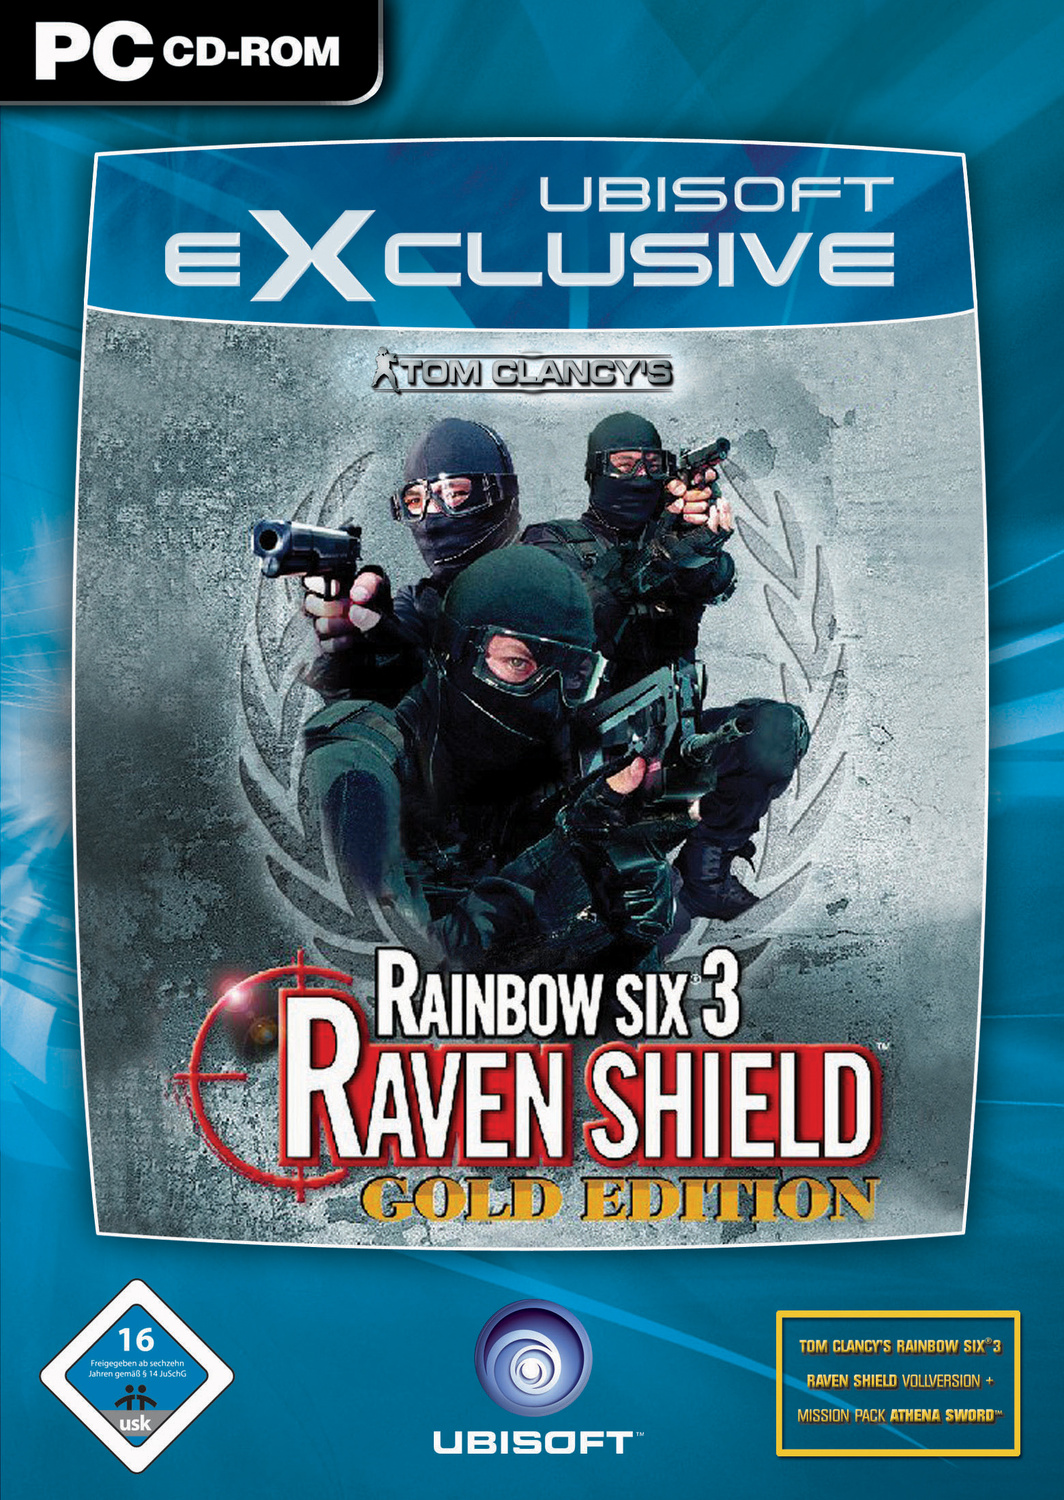 Rainbow Six 3: Ravenshield Gold Edition [UbiSoft eXclusive]